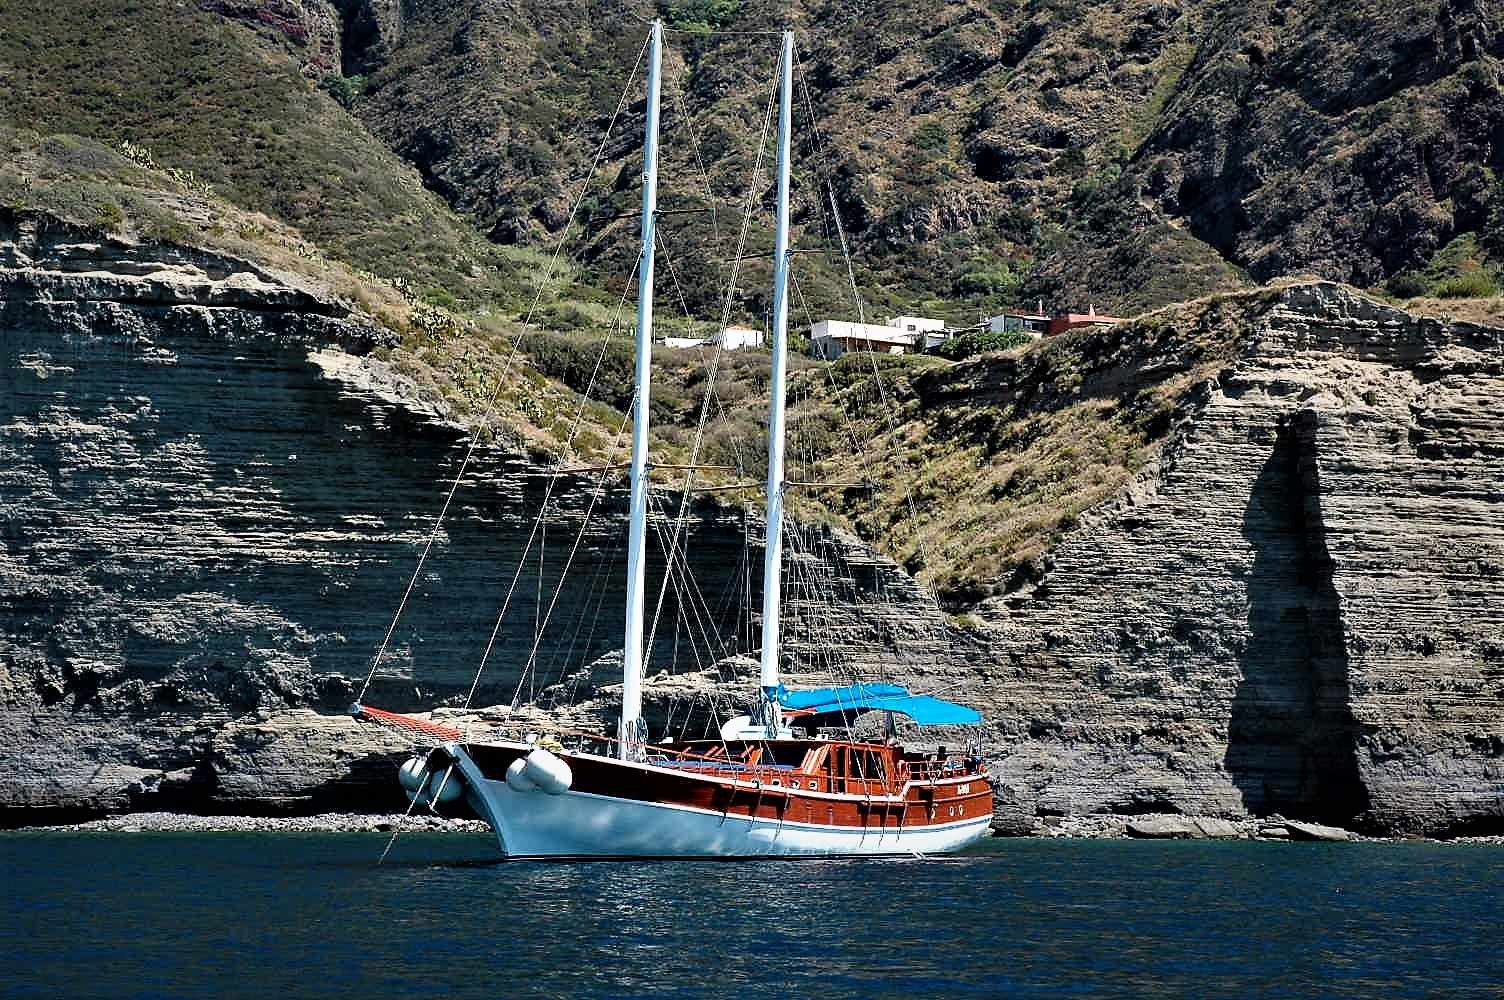 Last minute: Gulet cruise to Aeolian Islands, 1050 € Full board included.